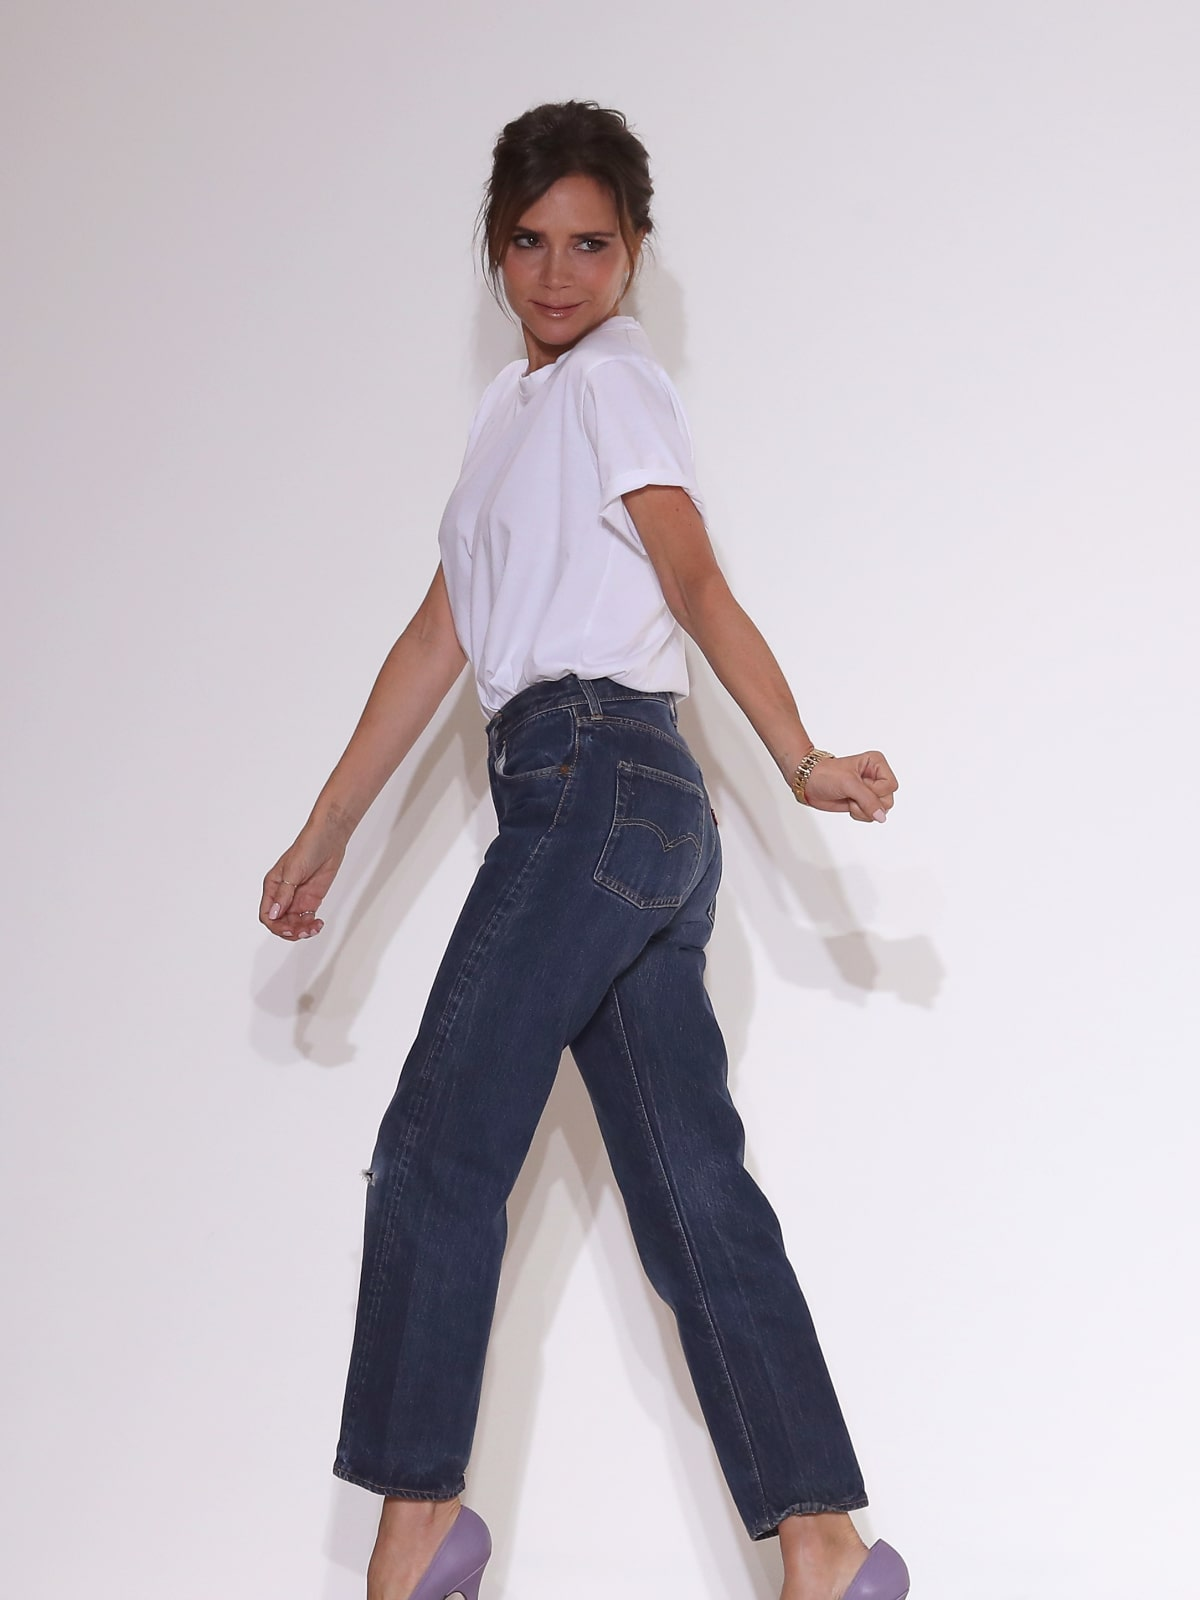 Victoria Beckham takes runway bow New York Fashion Week